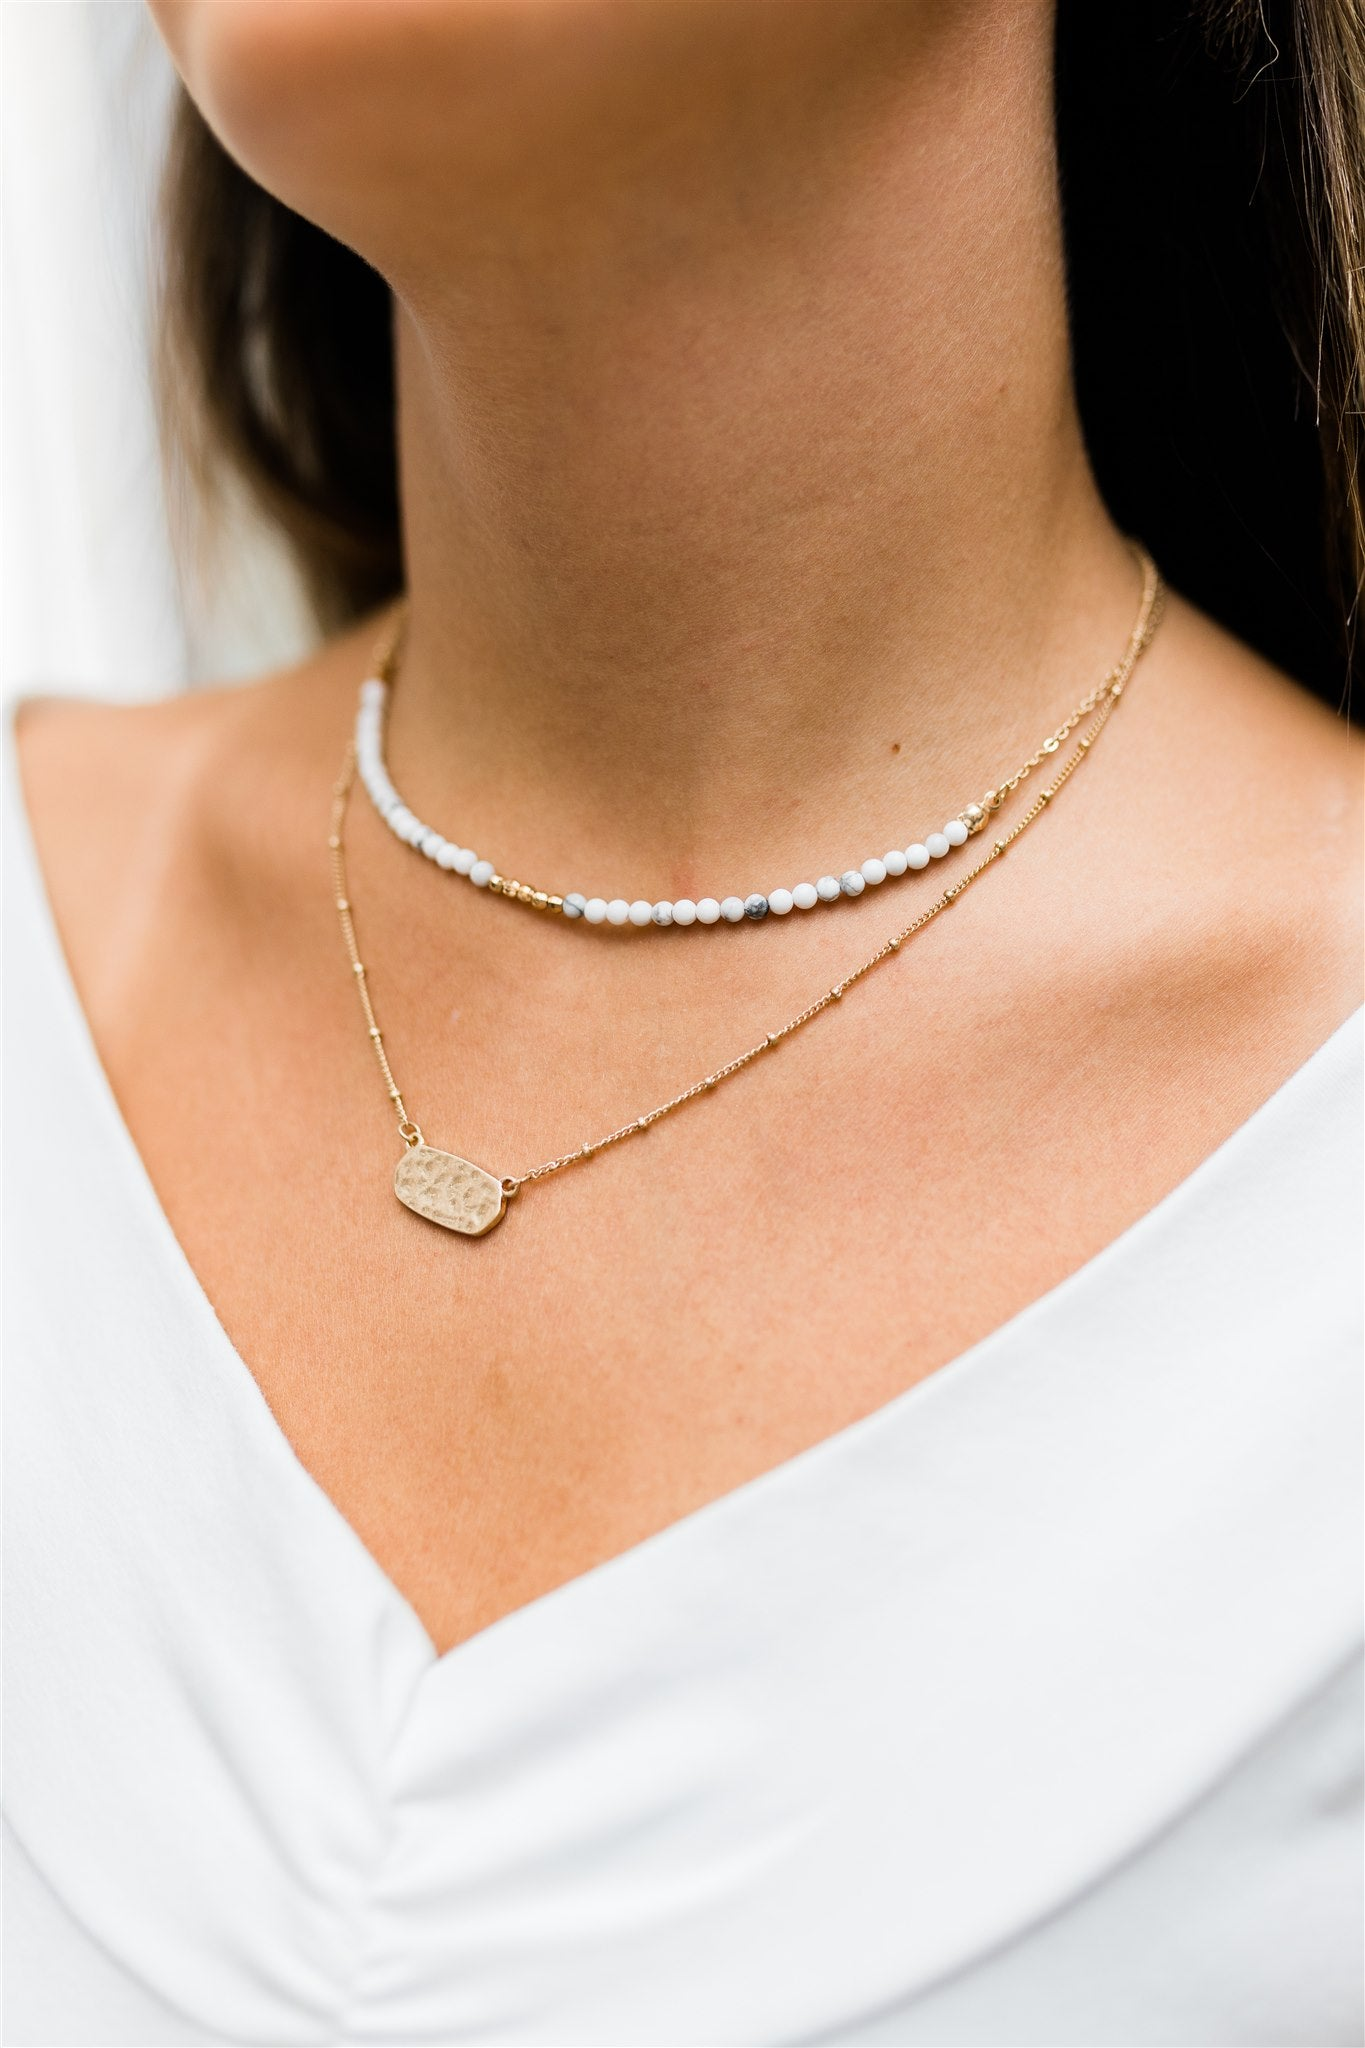 Long Story Short Choker - White & Worn Gold